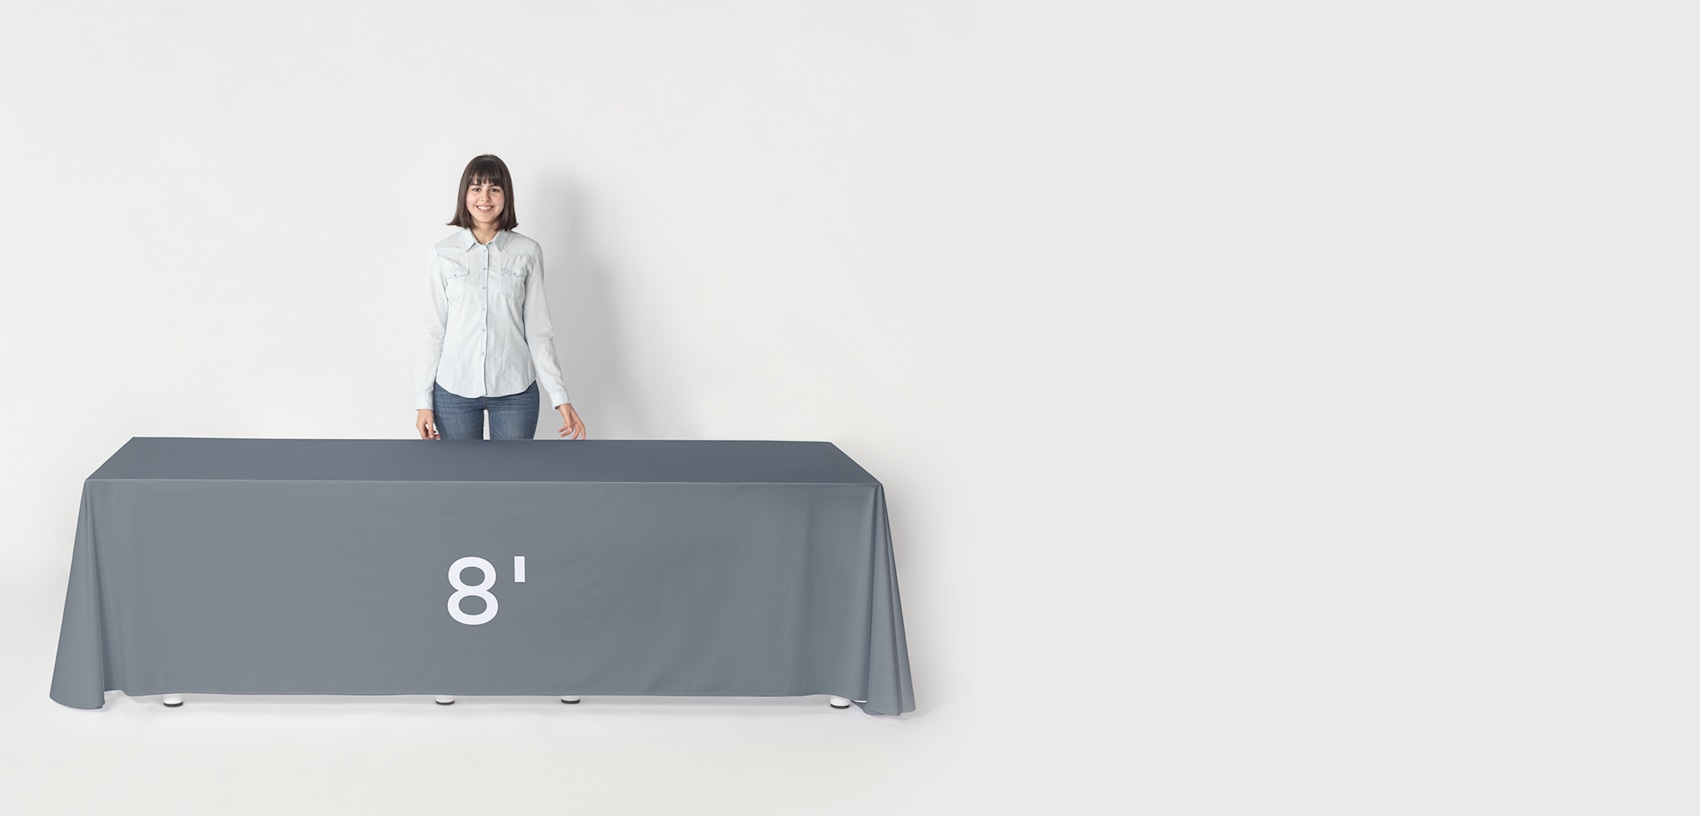 8 ft lenght tablecloth